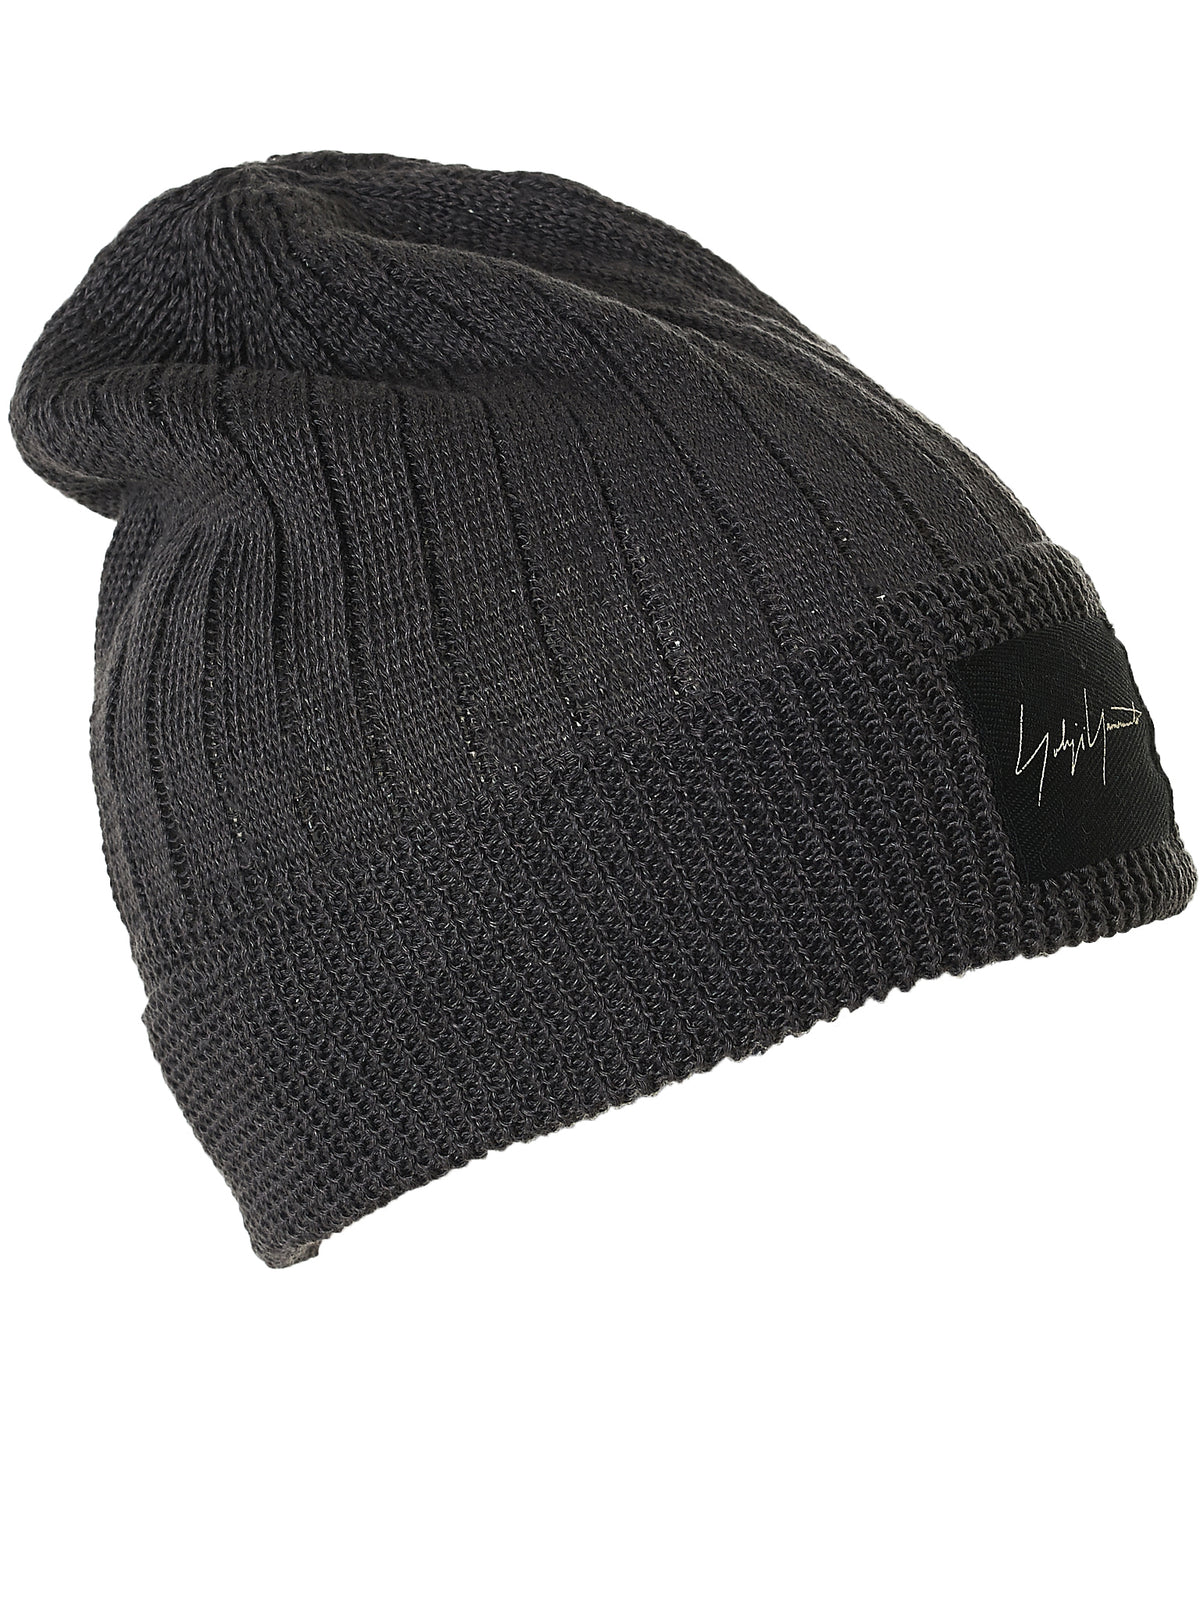 French Linen Beanie (HW-H05-363-2-GREY)